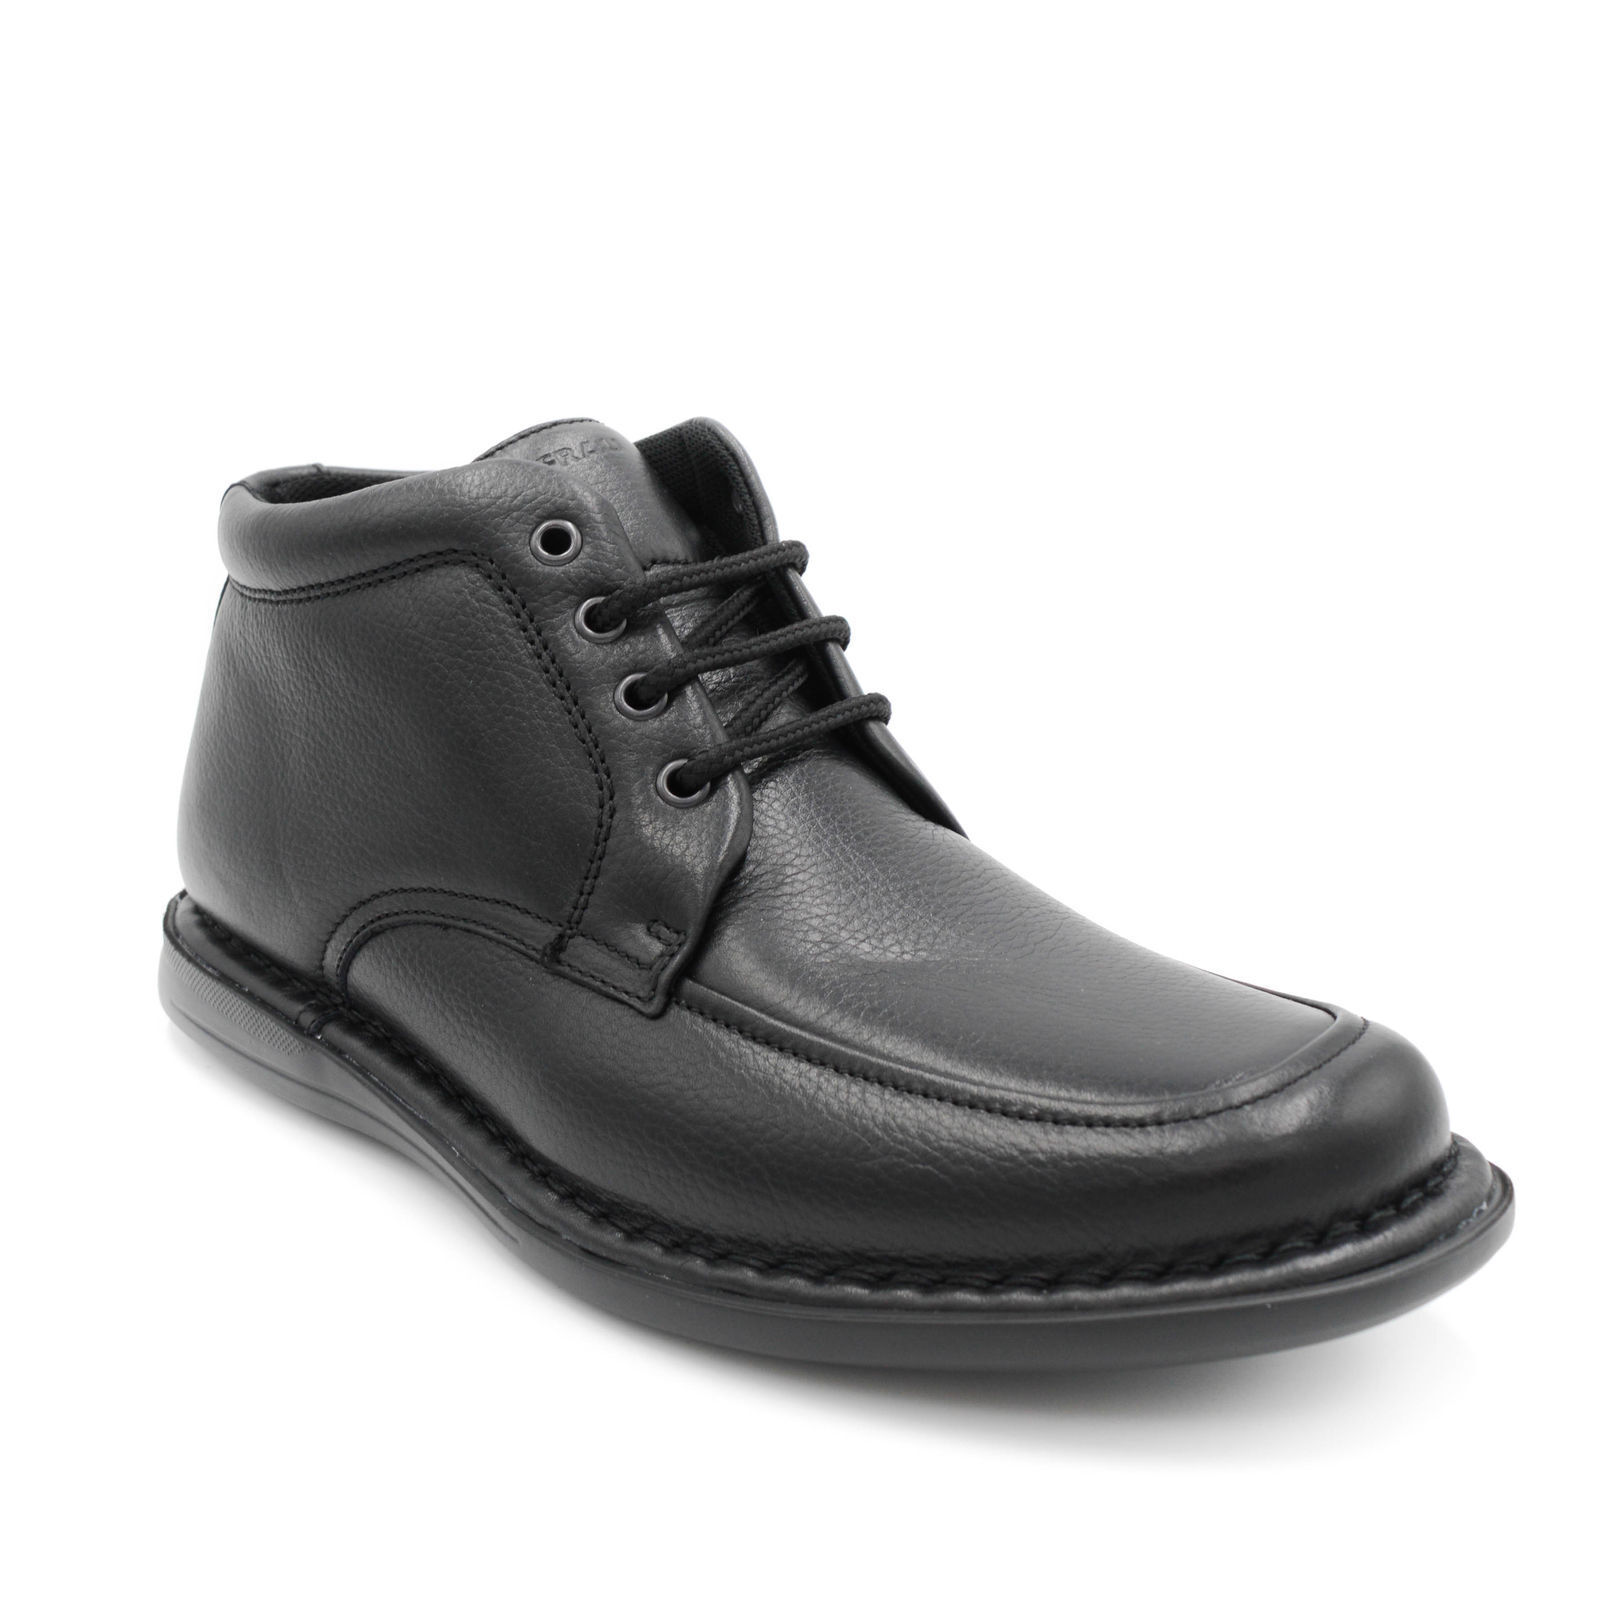 FRAU FX 38P4 STIVALETTO men black RODEO XL - LEATHER - MADE IN ITALY